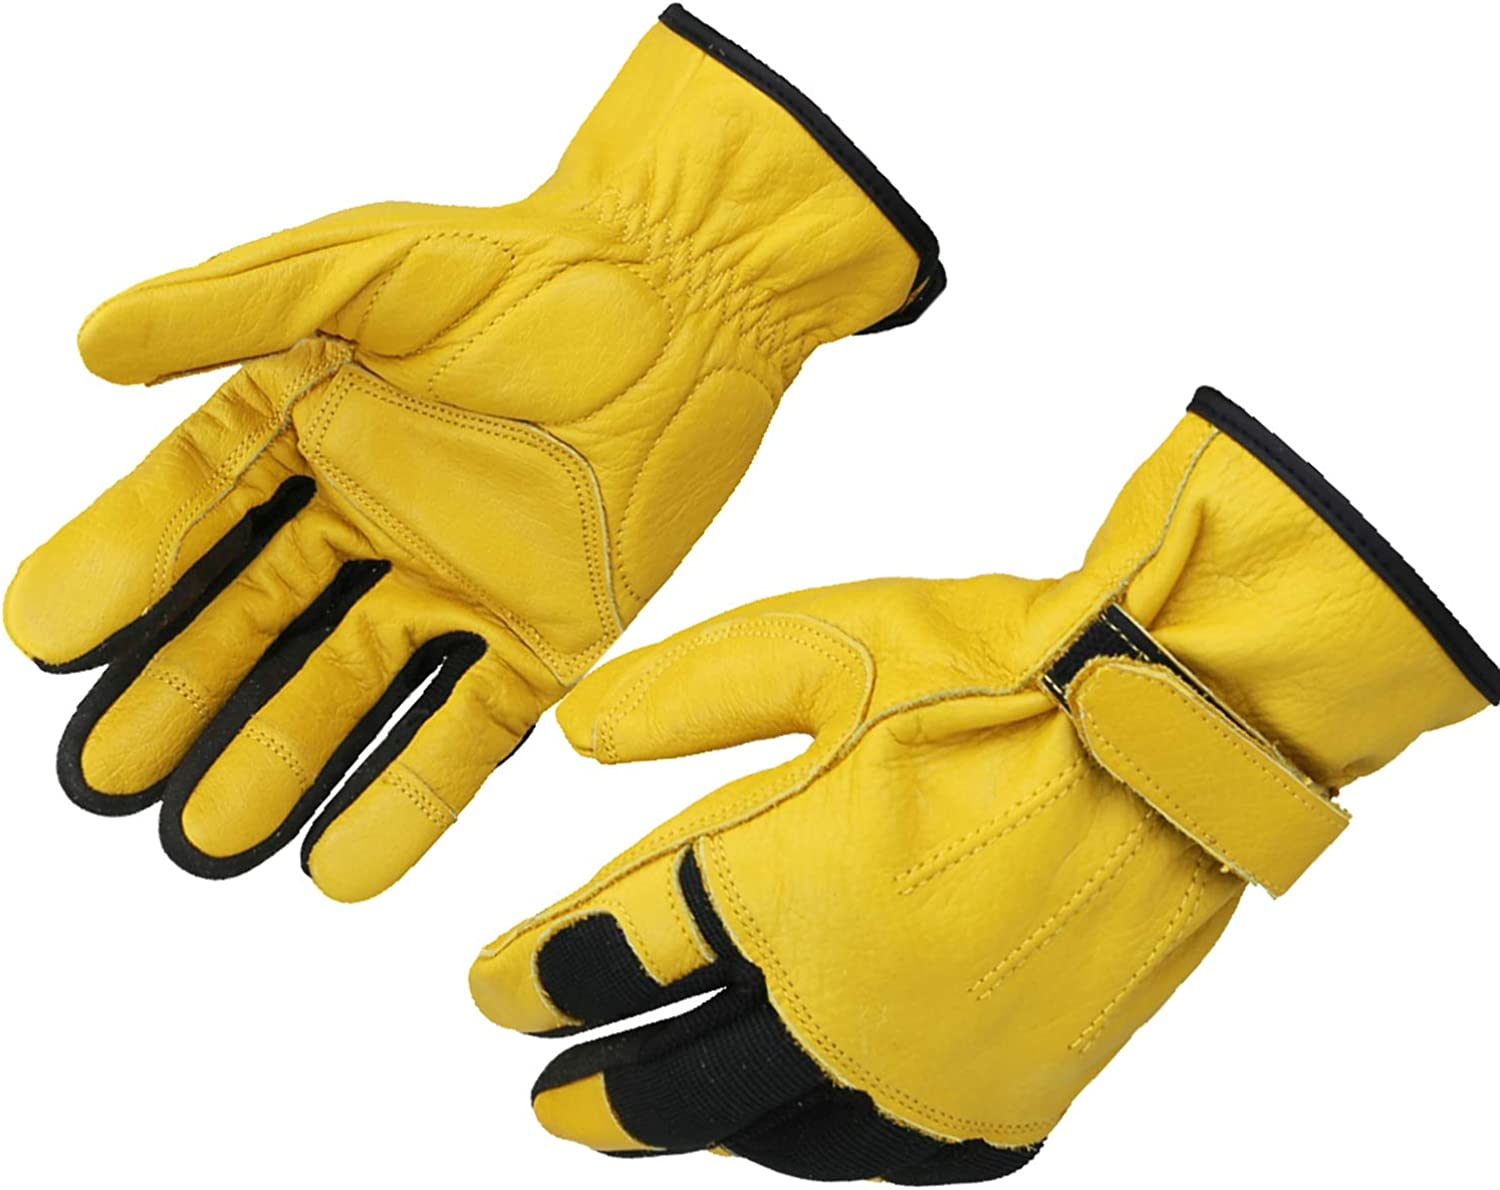 OLSON DEEPAK Leather Gloves Carpentry specialty shop for Garden Construction Max 74% OFF